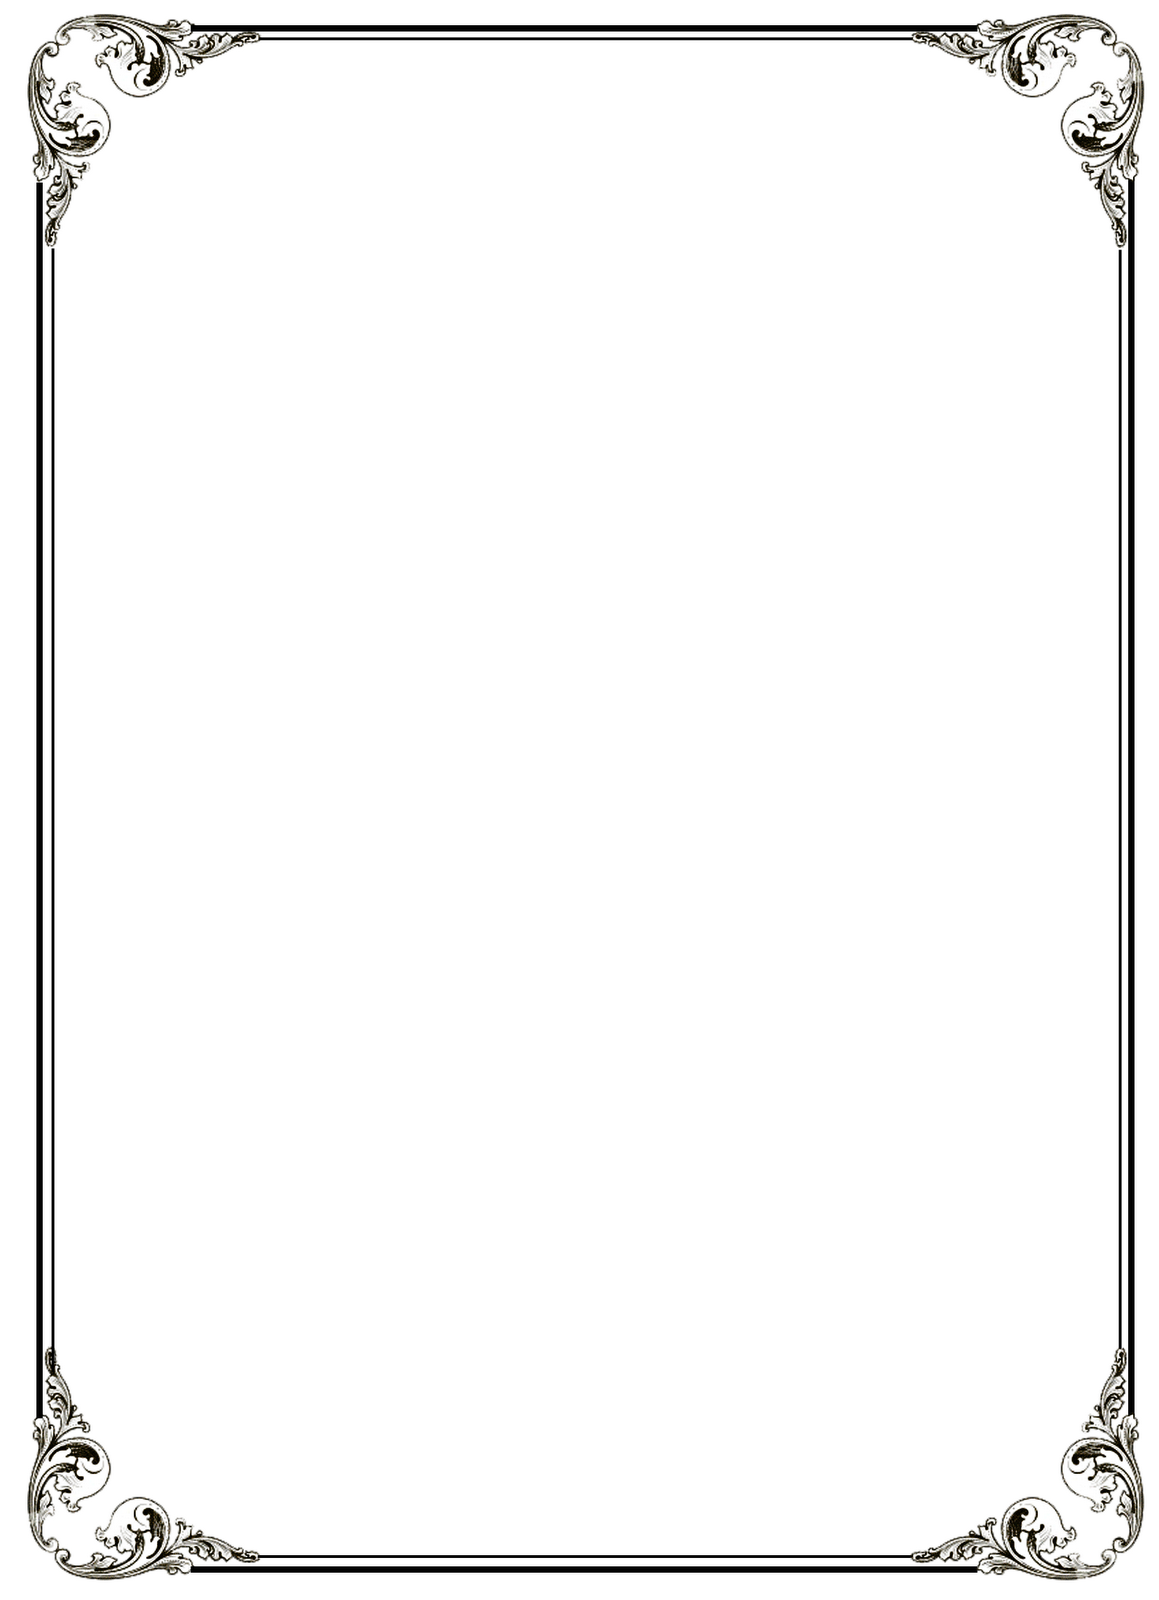 Free PNG Frames And Page Borders Transparent Frames And Page Borders.